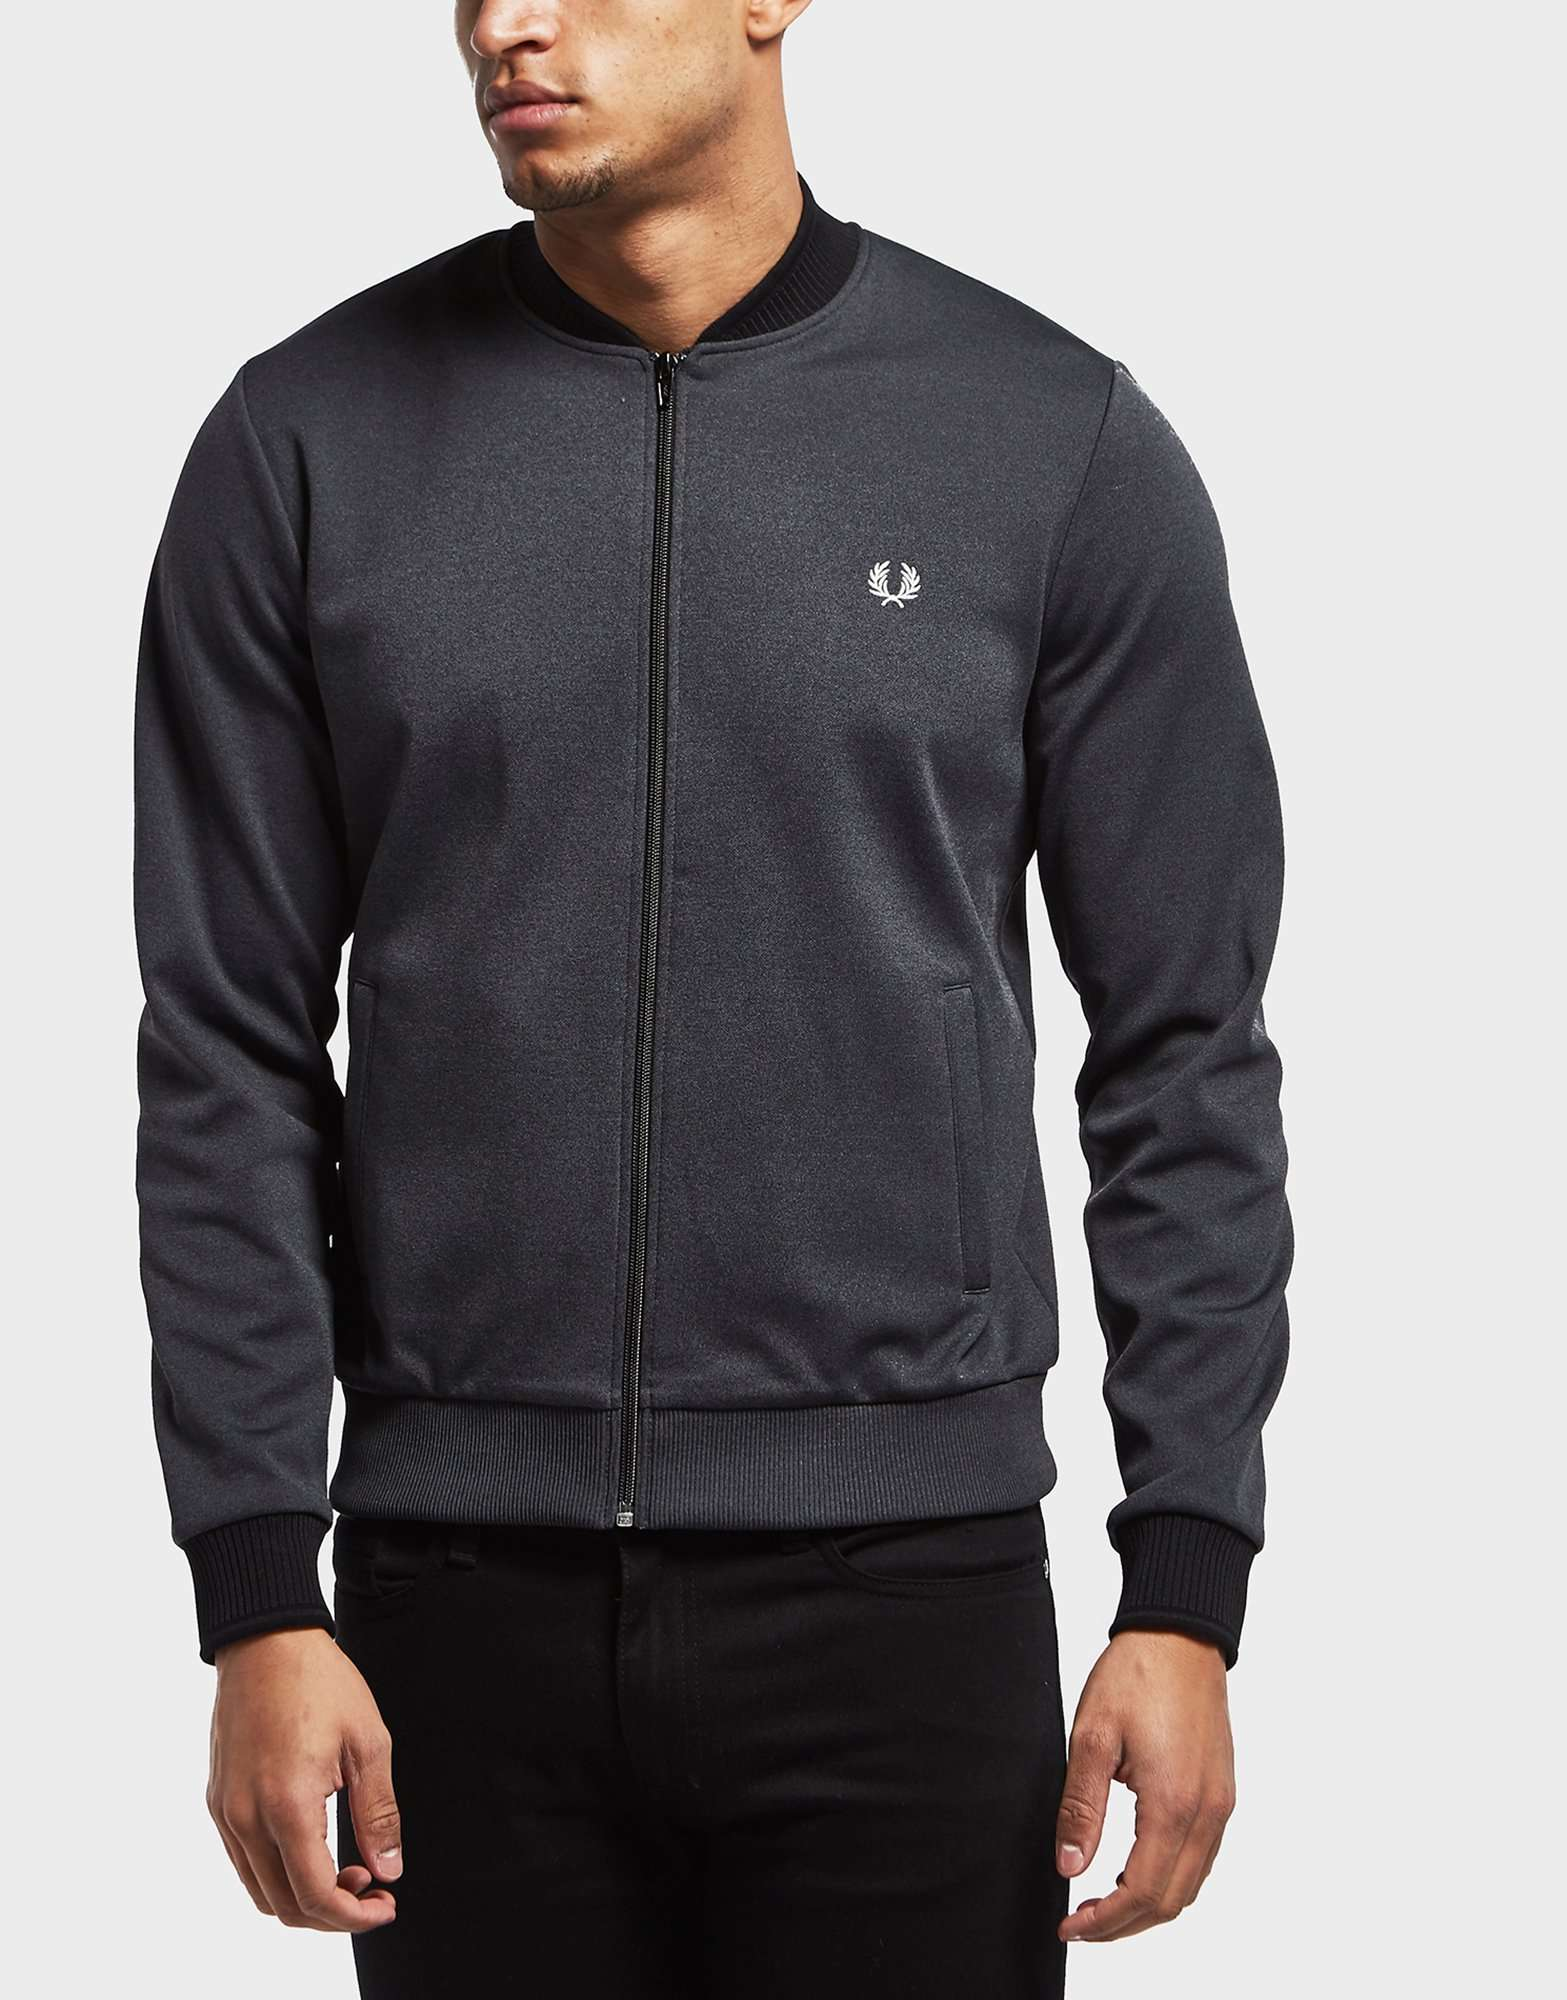 Fred Perry Tipped Bomber Track Top - Online Exclusive